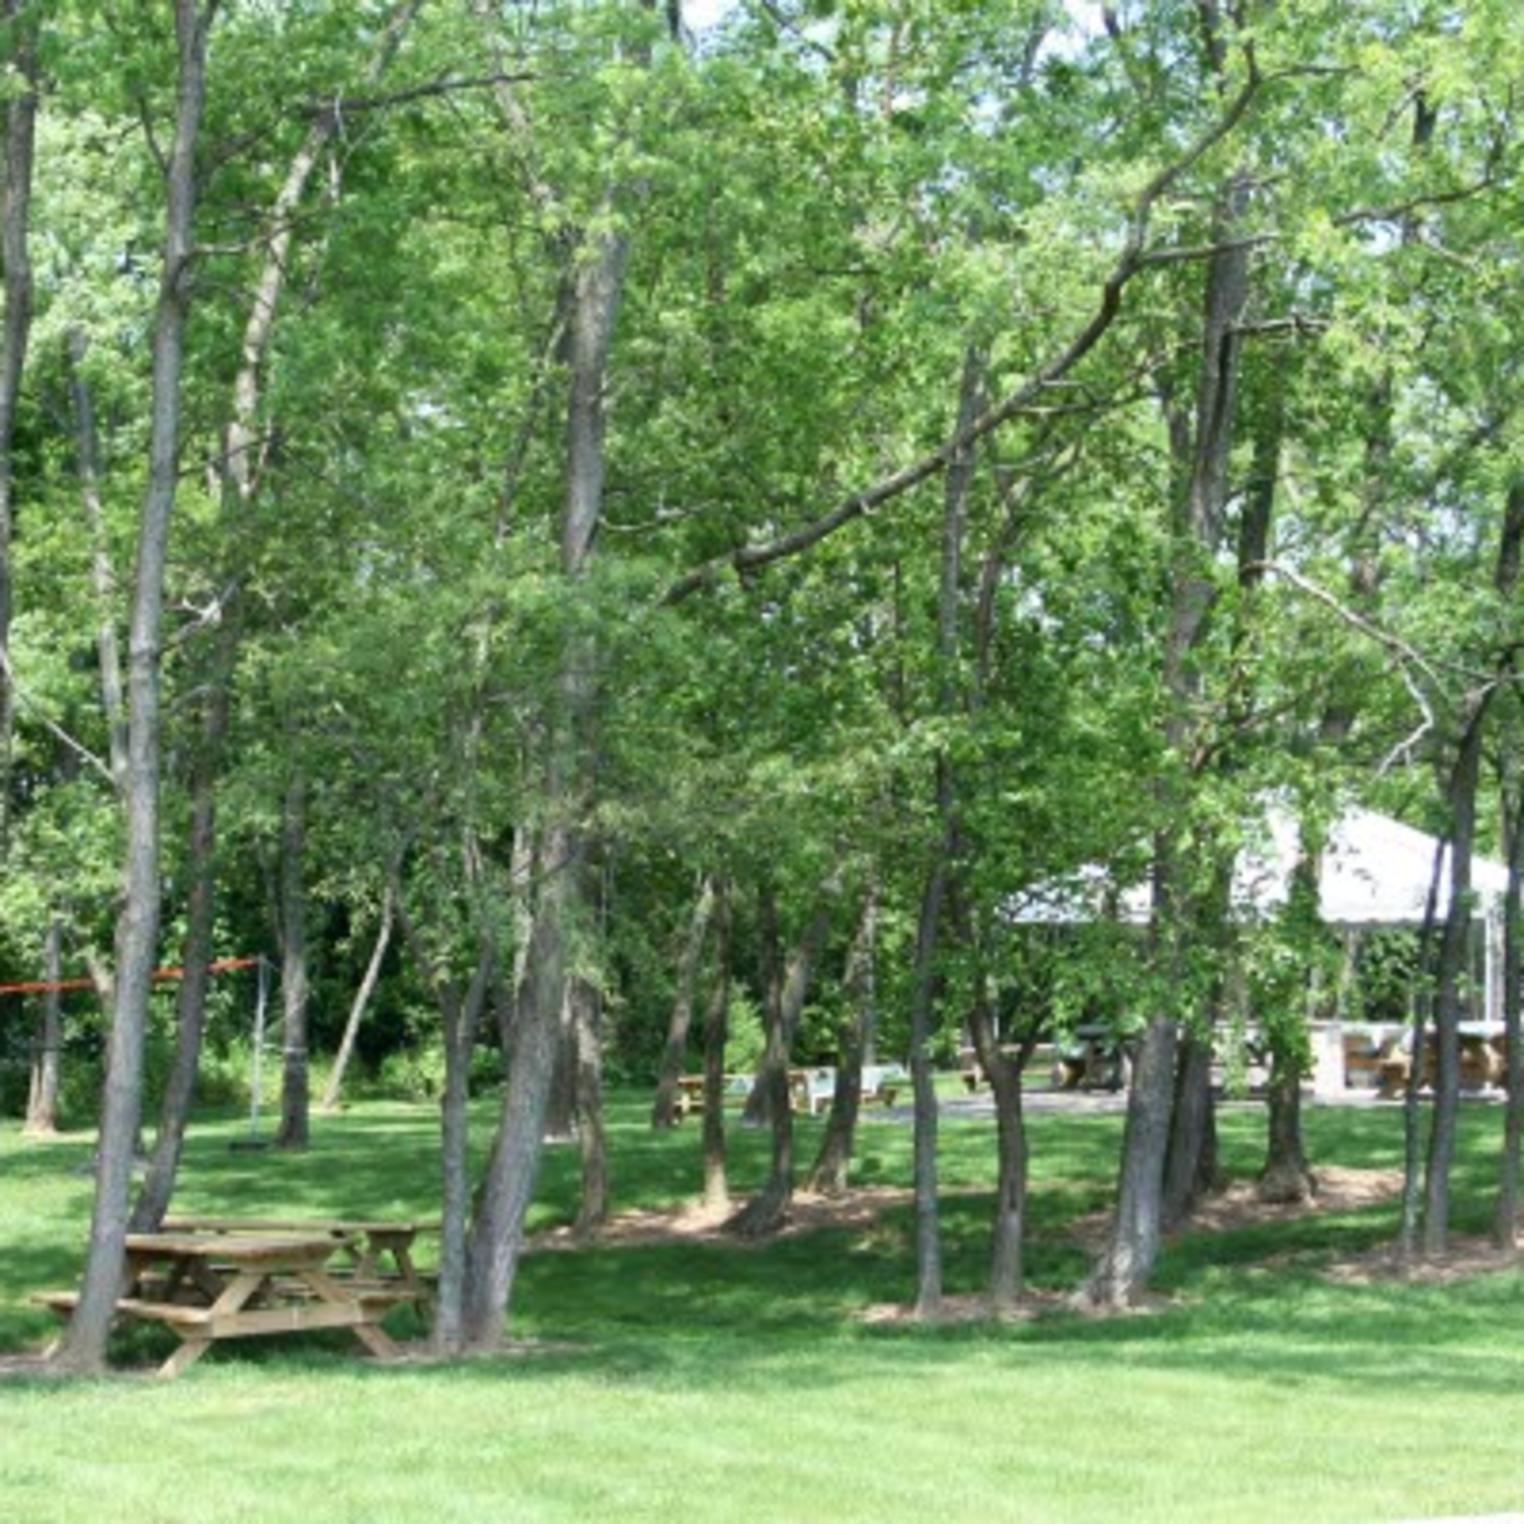 Outdoor and picnic area